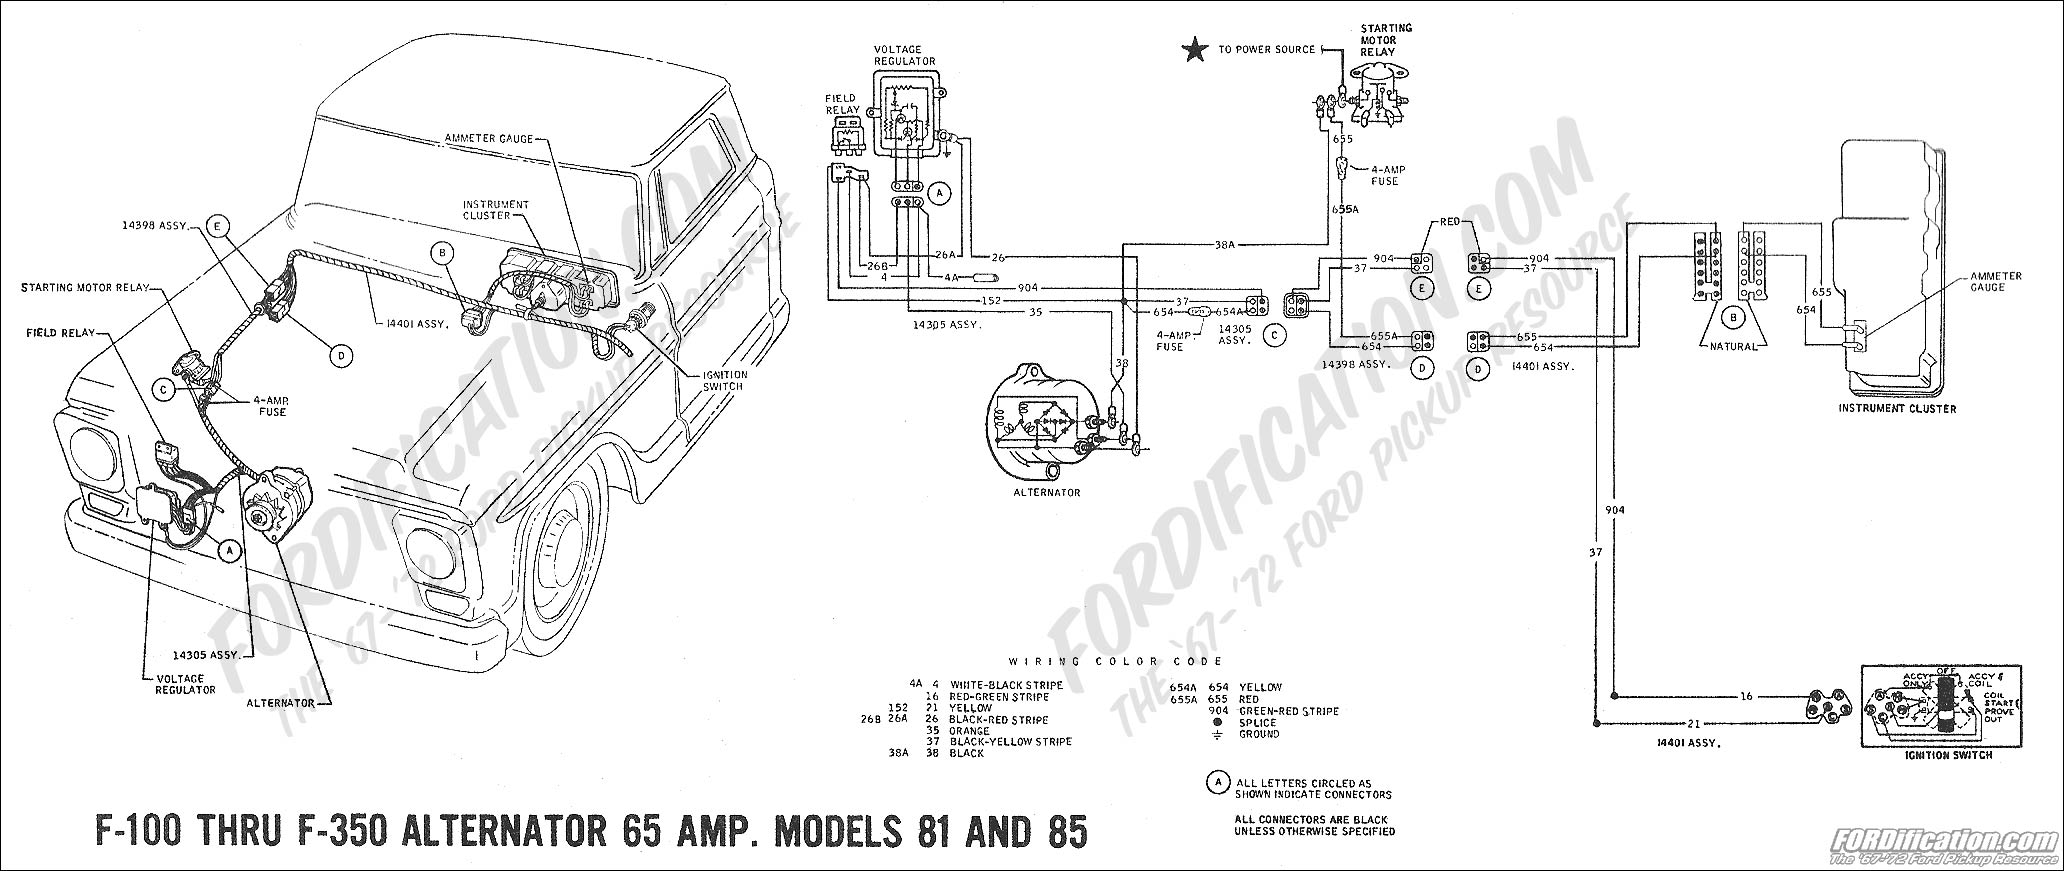 Wiring Charging additionally F Brakes Mpc together with Ford Superdutyowd besides Wiring Master Of moreover Chevy Starter Wiring Diagram Truck At Chevy. on 78 ford f250 fuse diagram